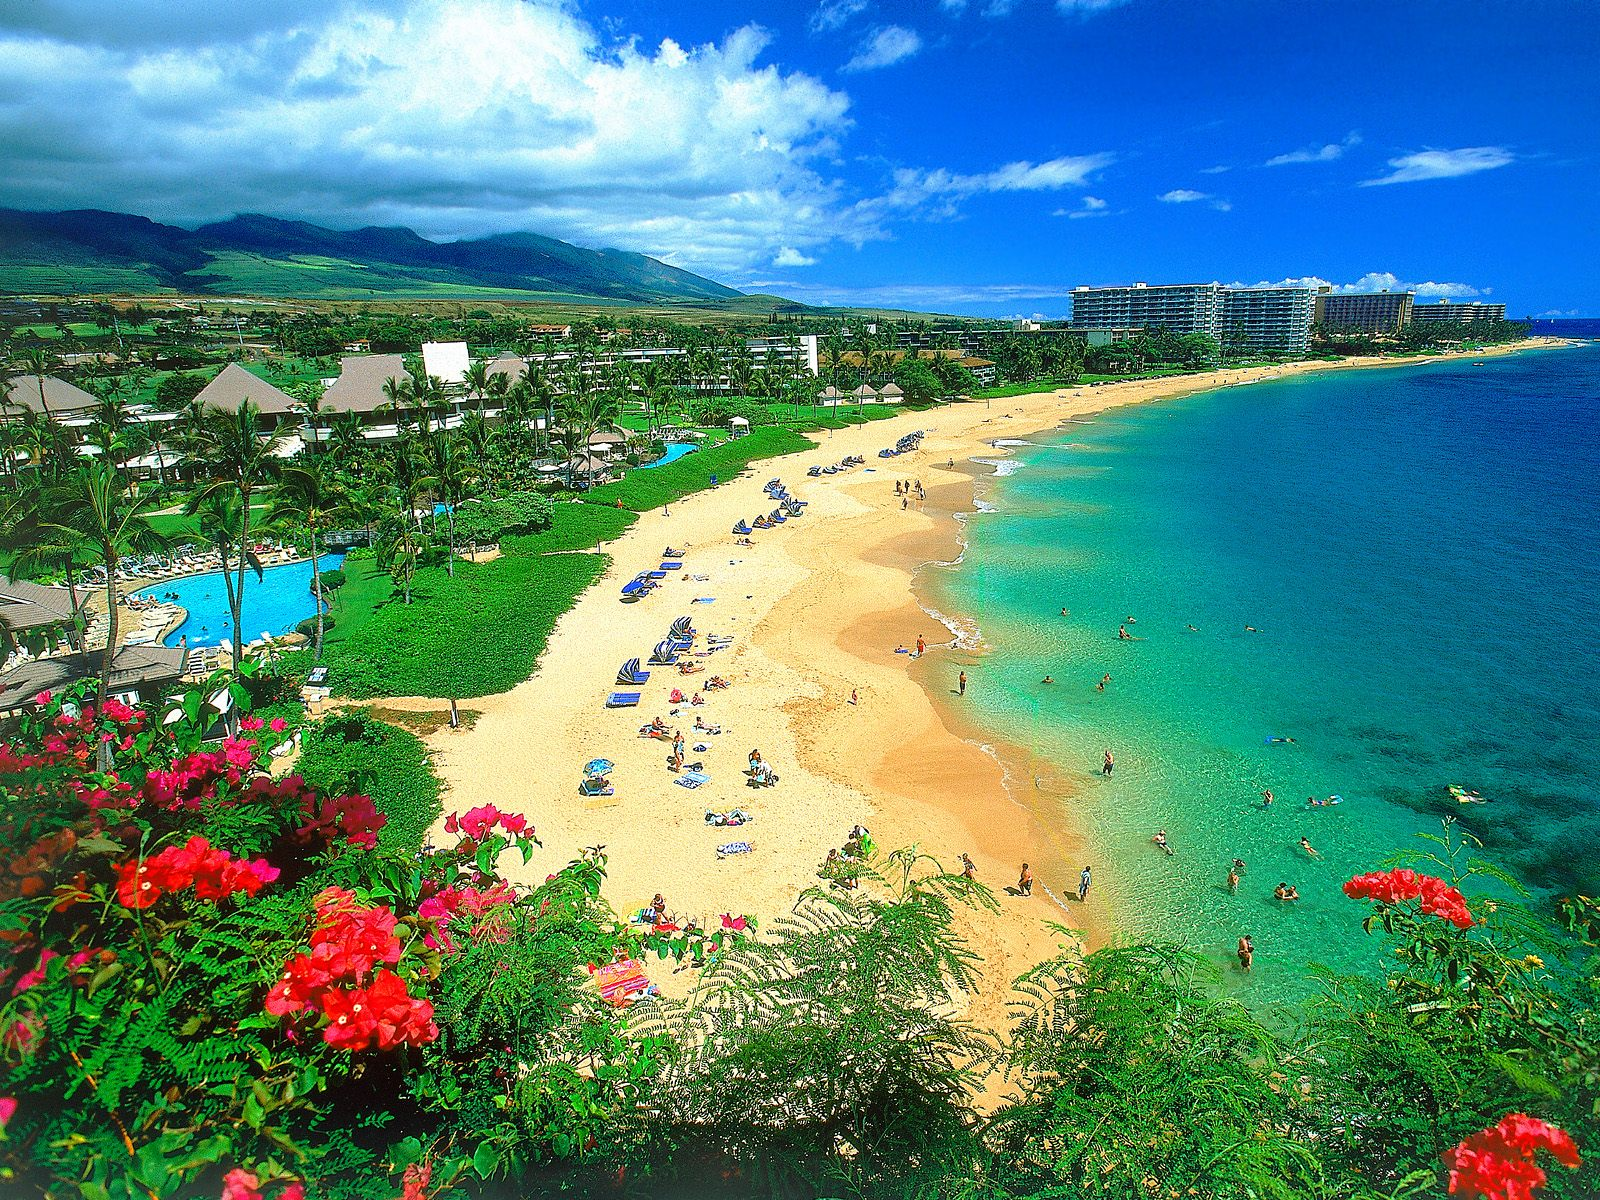 Kaanapali Beach Maui Hawaii wallpaper on We Heart It 1600x1200